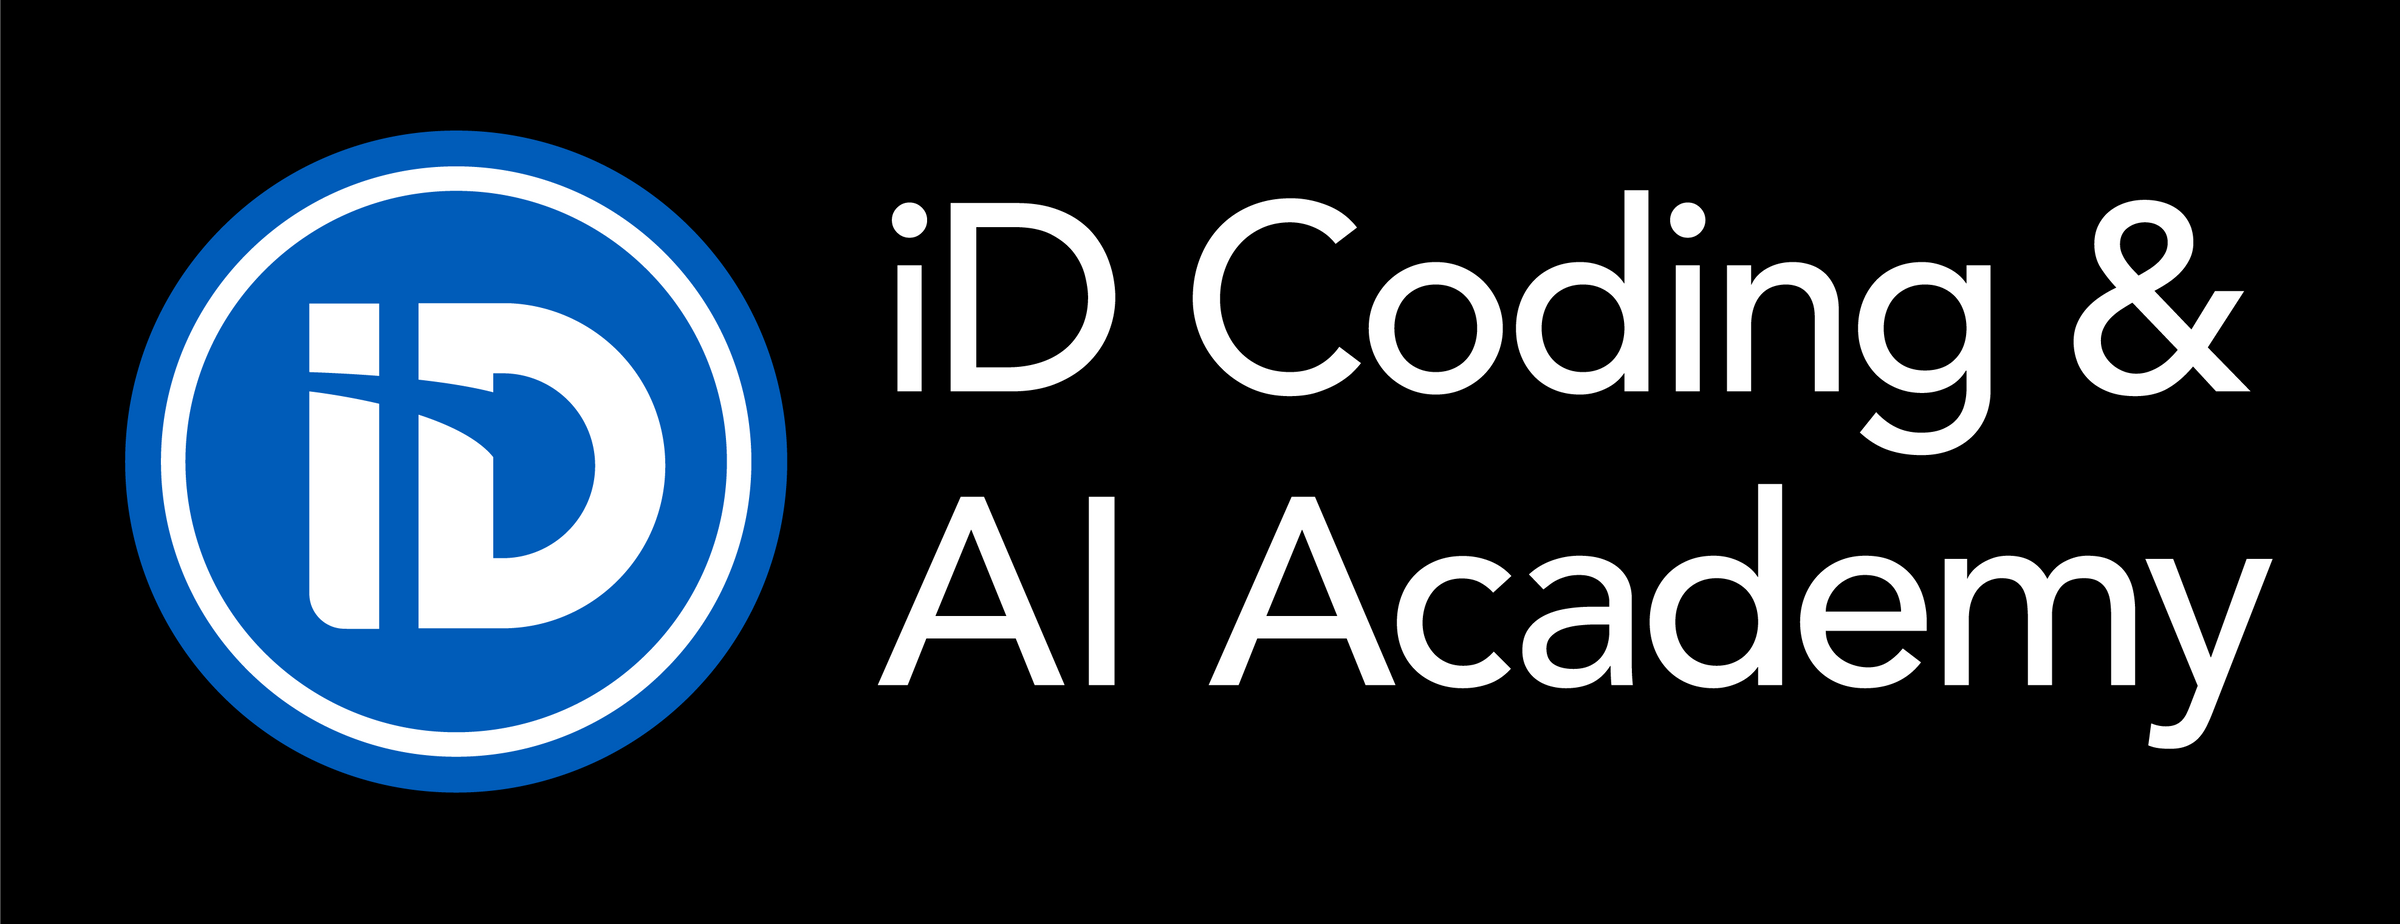 iD Coding & AI Academy for Teens - Held at American University